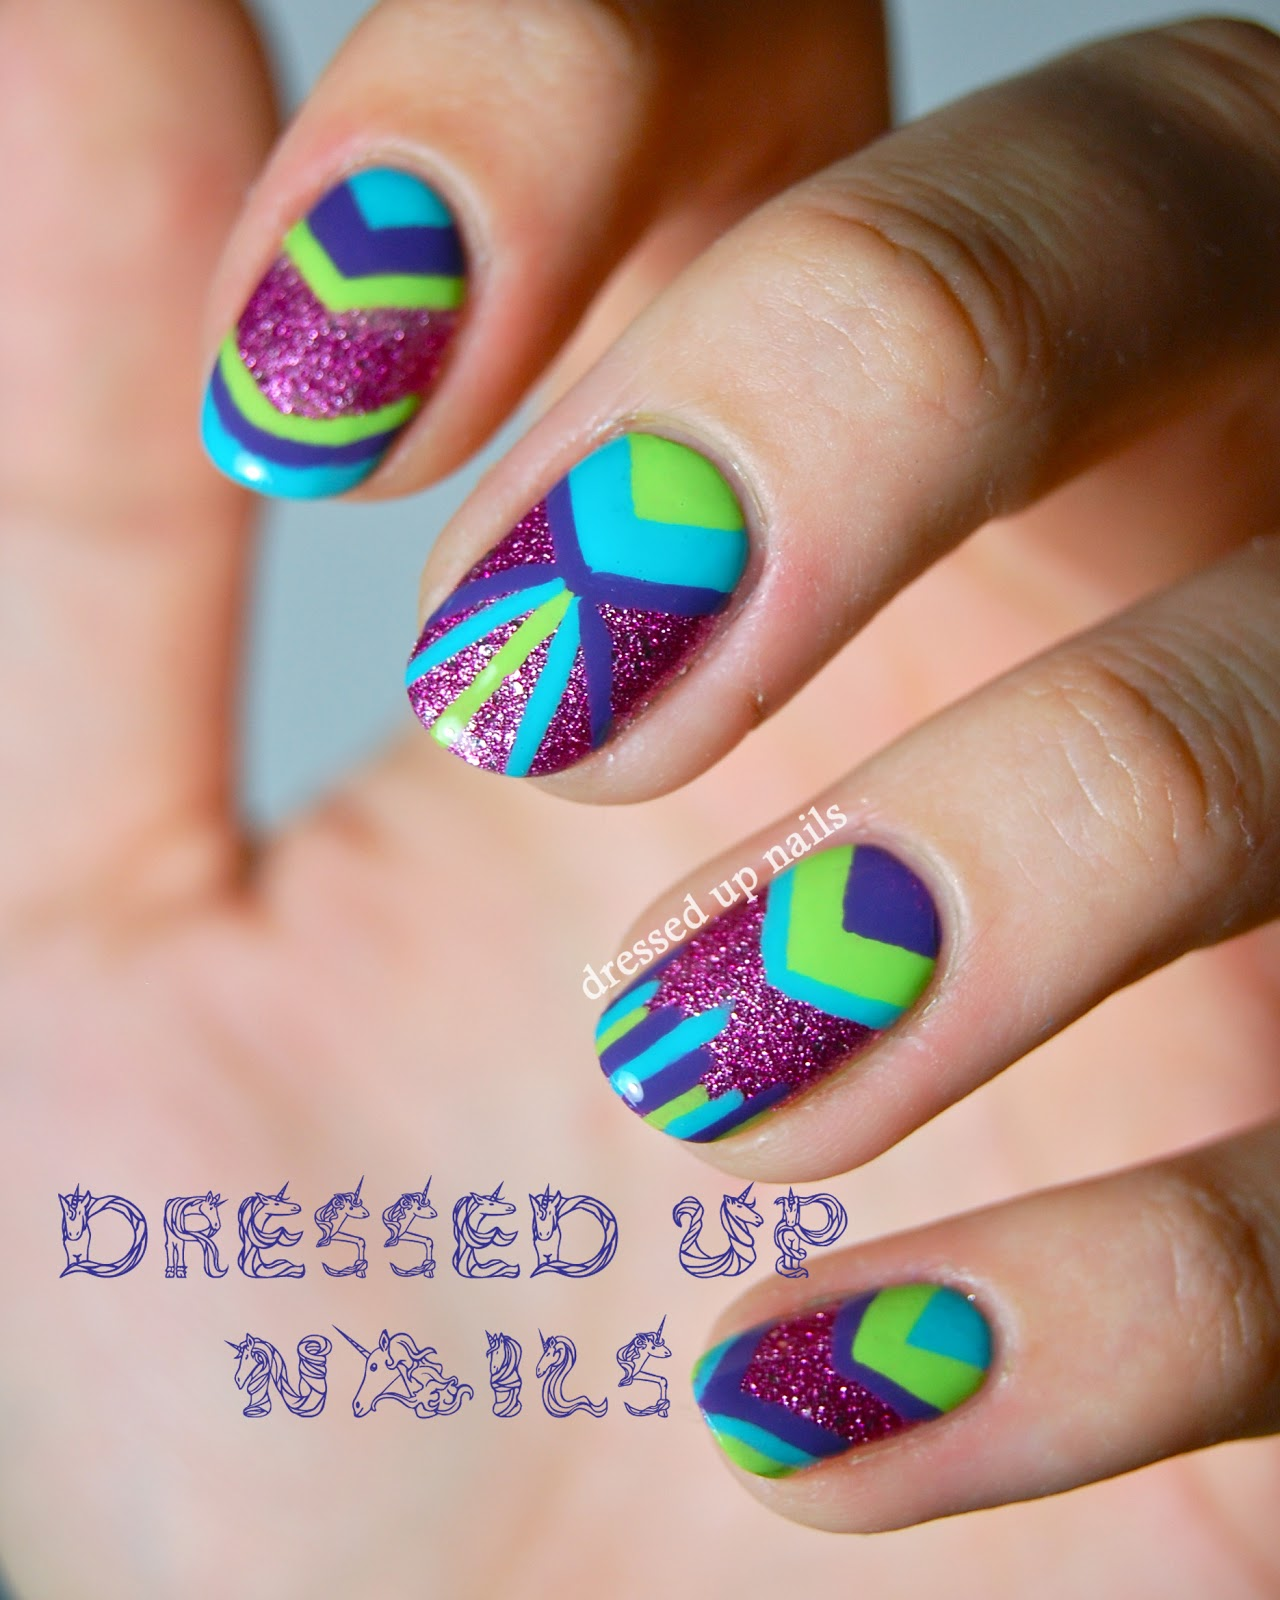 Impressive Up Nail Art 26 For Inspiration Article